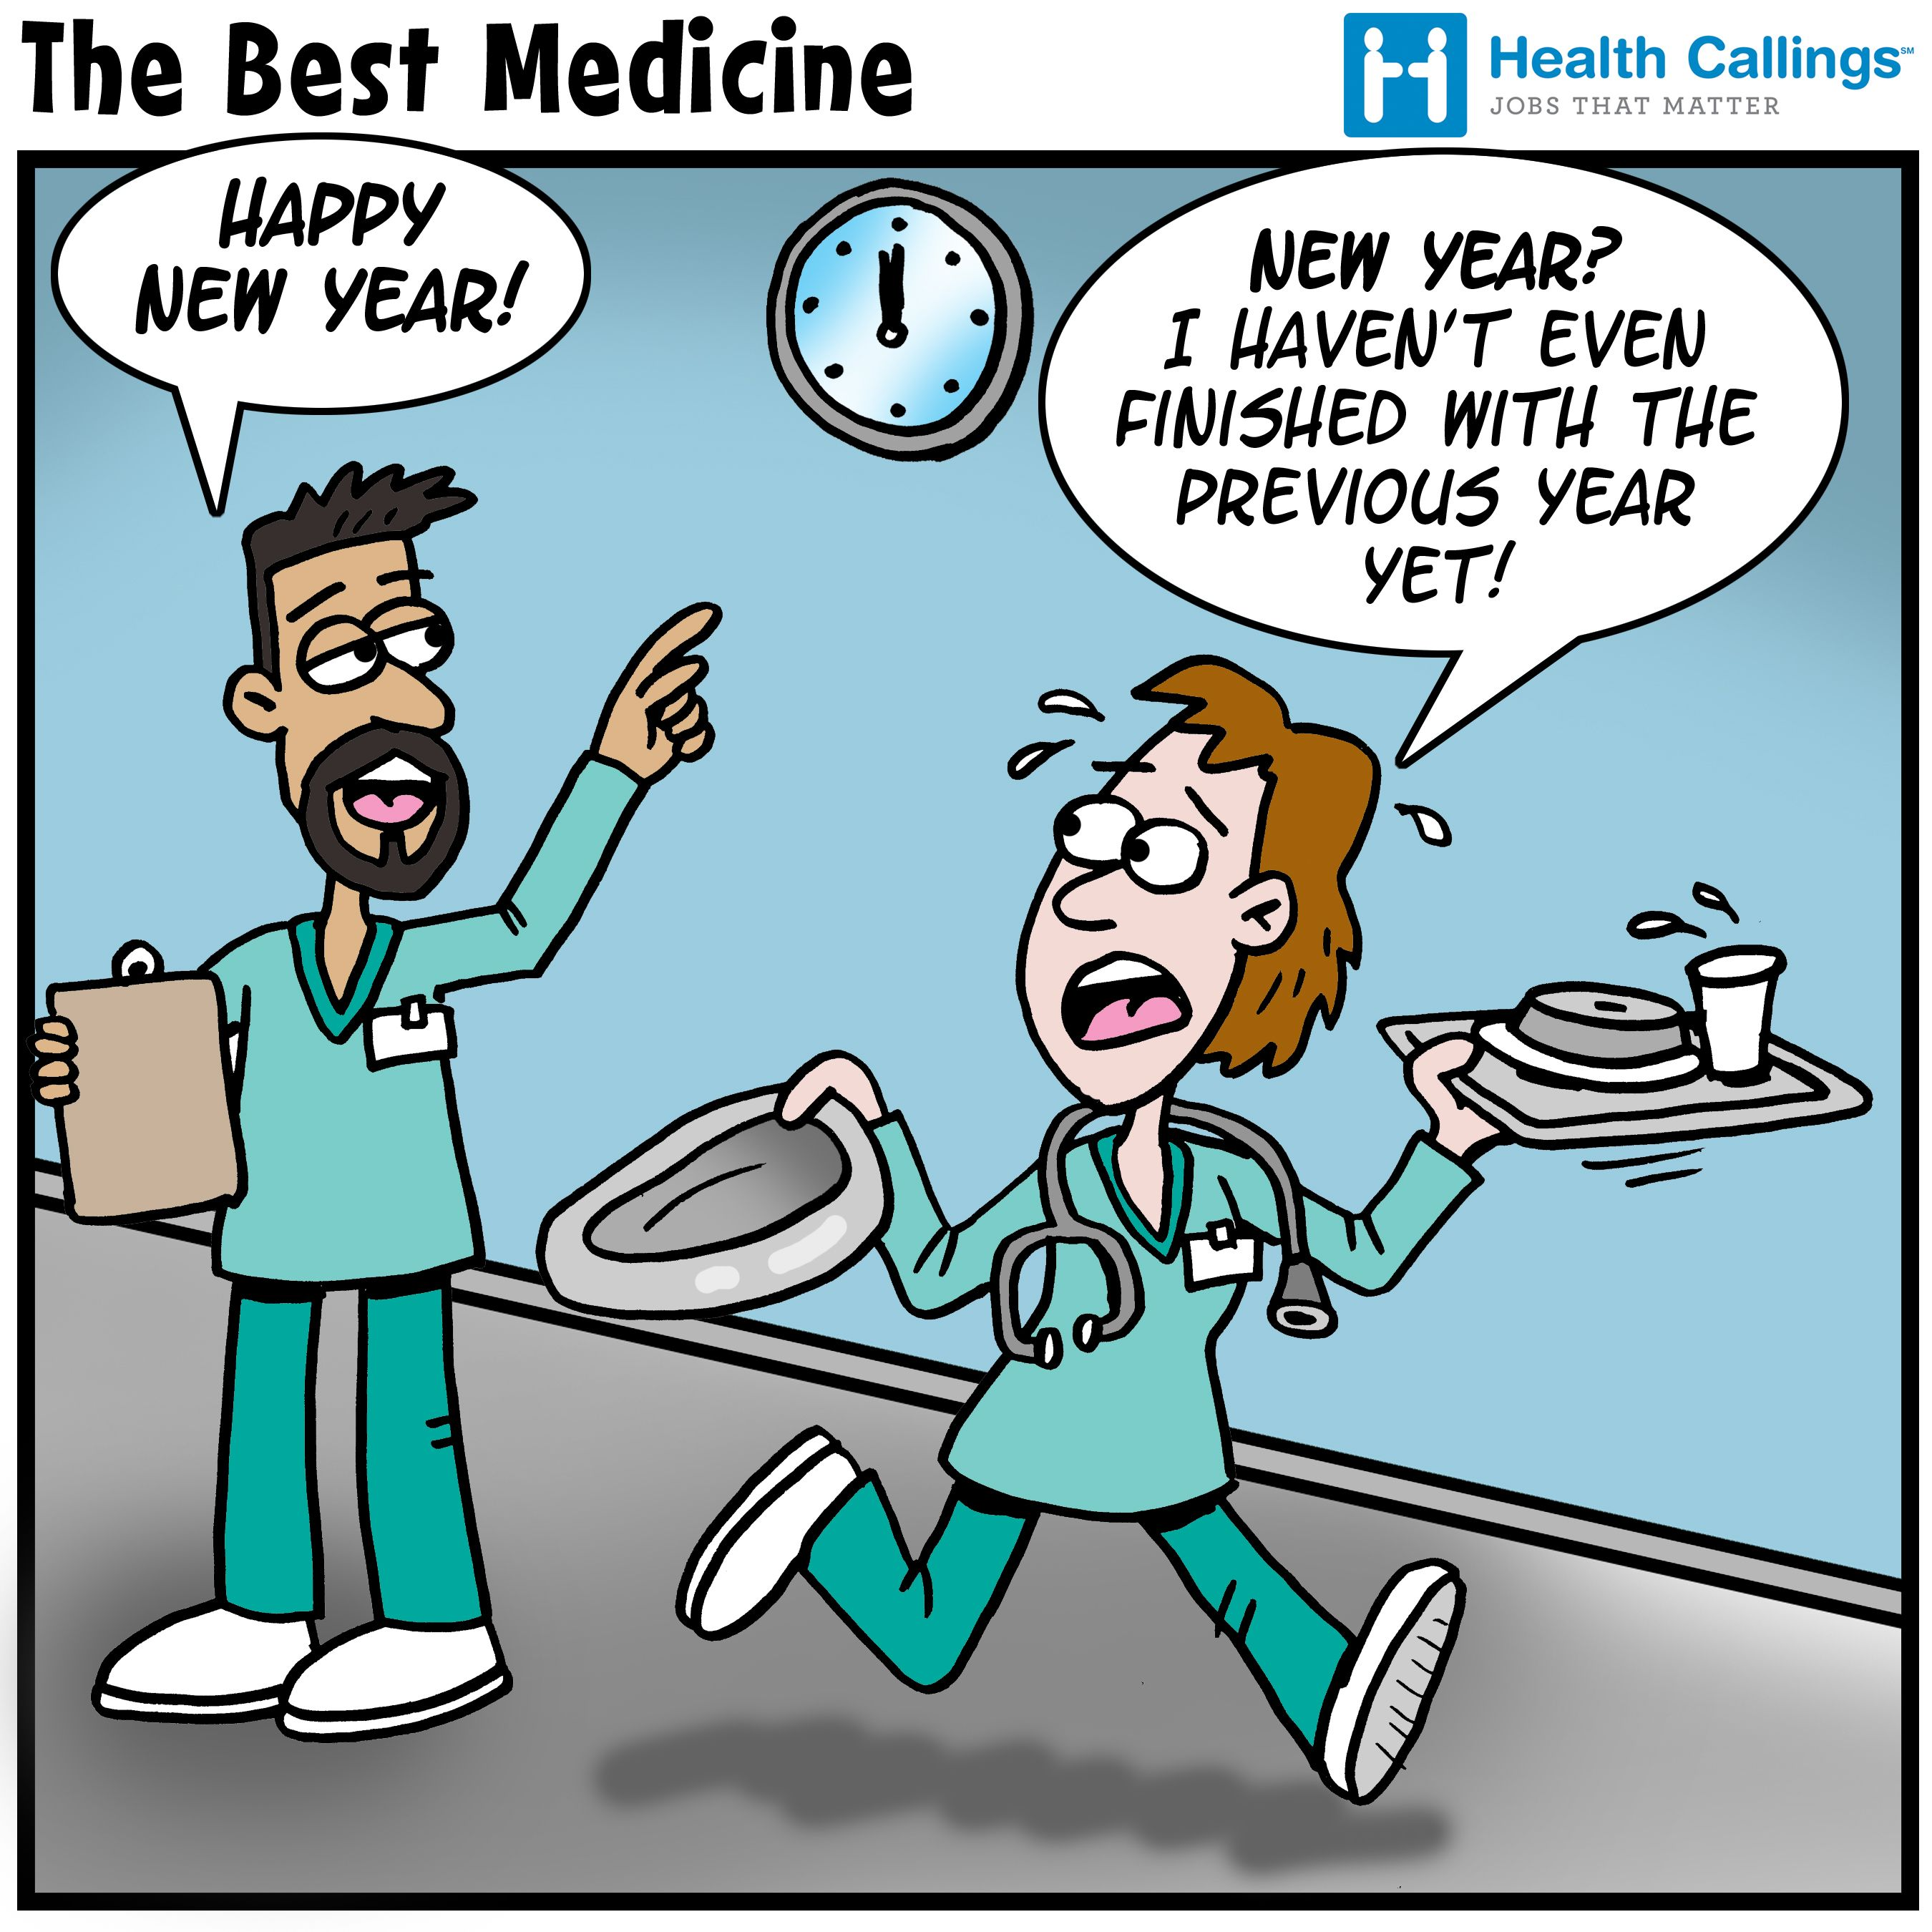 happy new year medicine 2014 - Google Search | Hospital ...